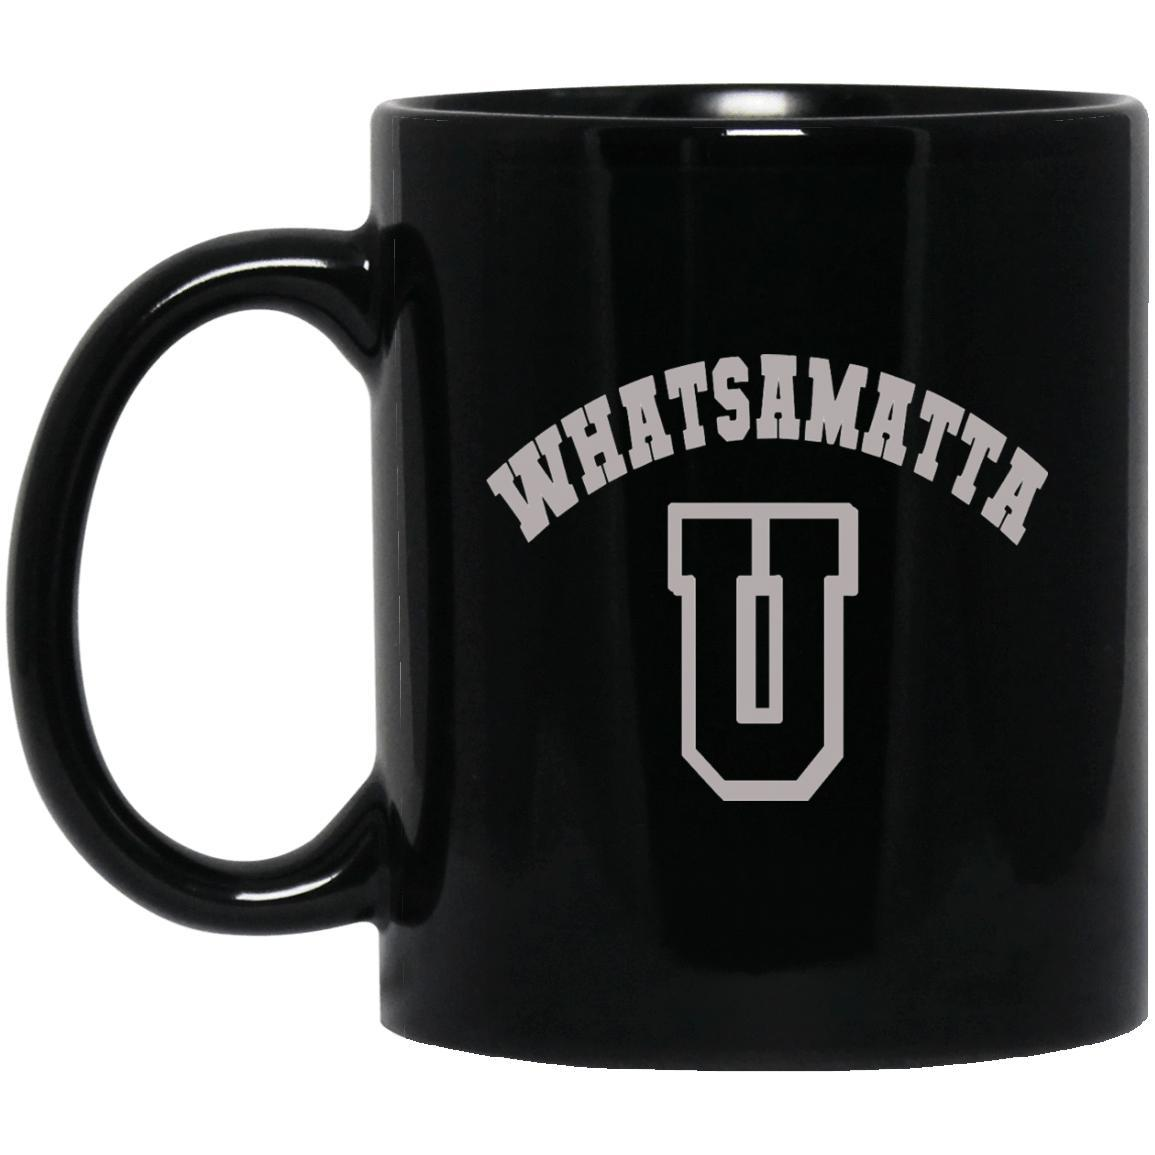 Whatsamatta U Mugs